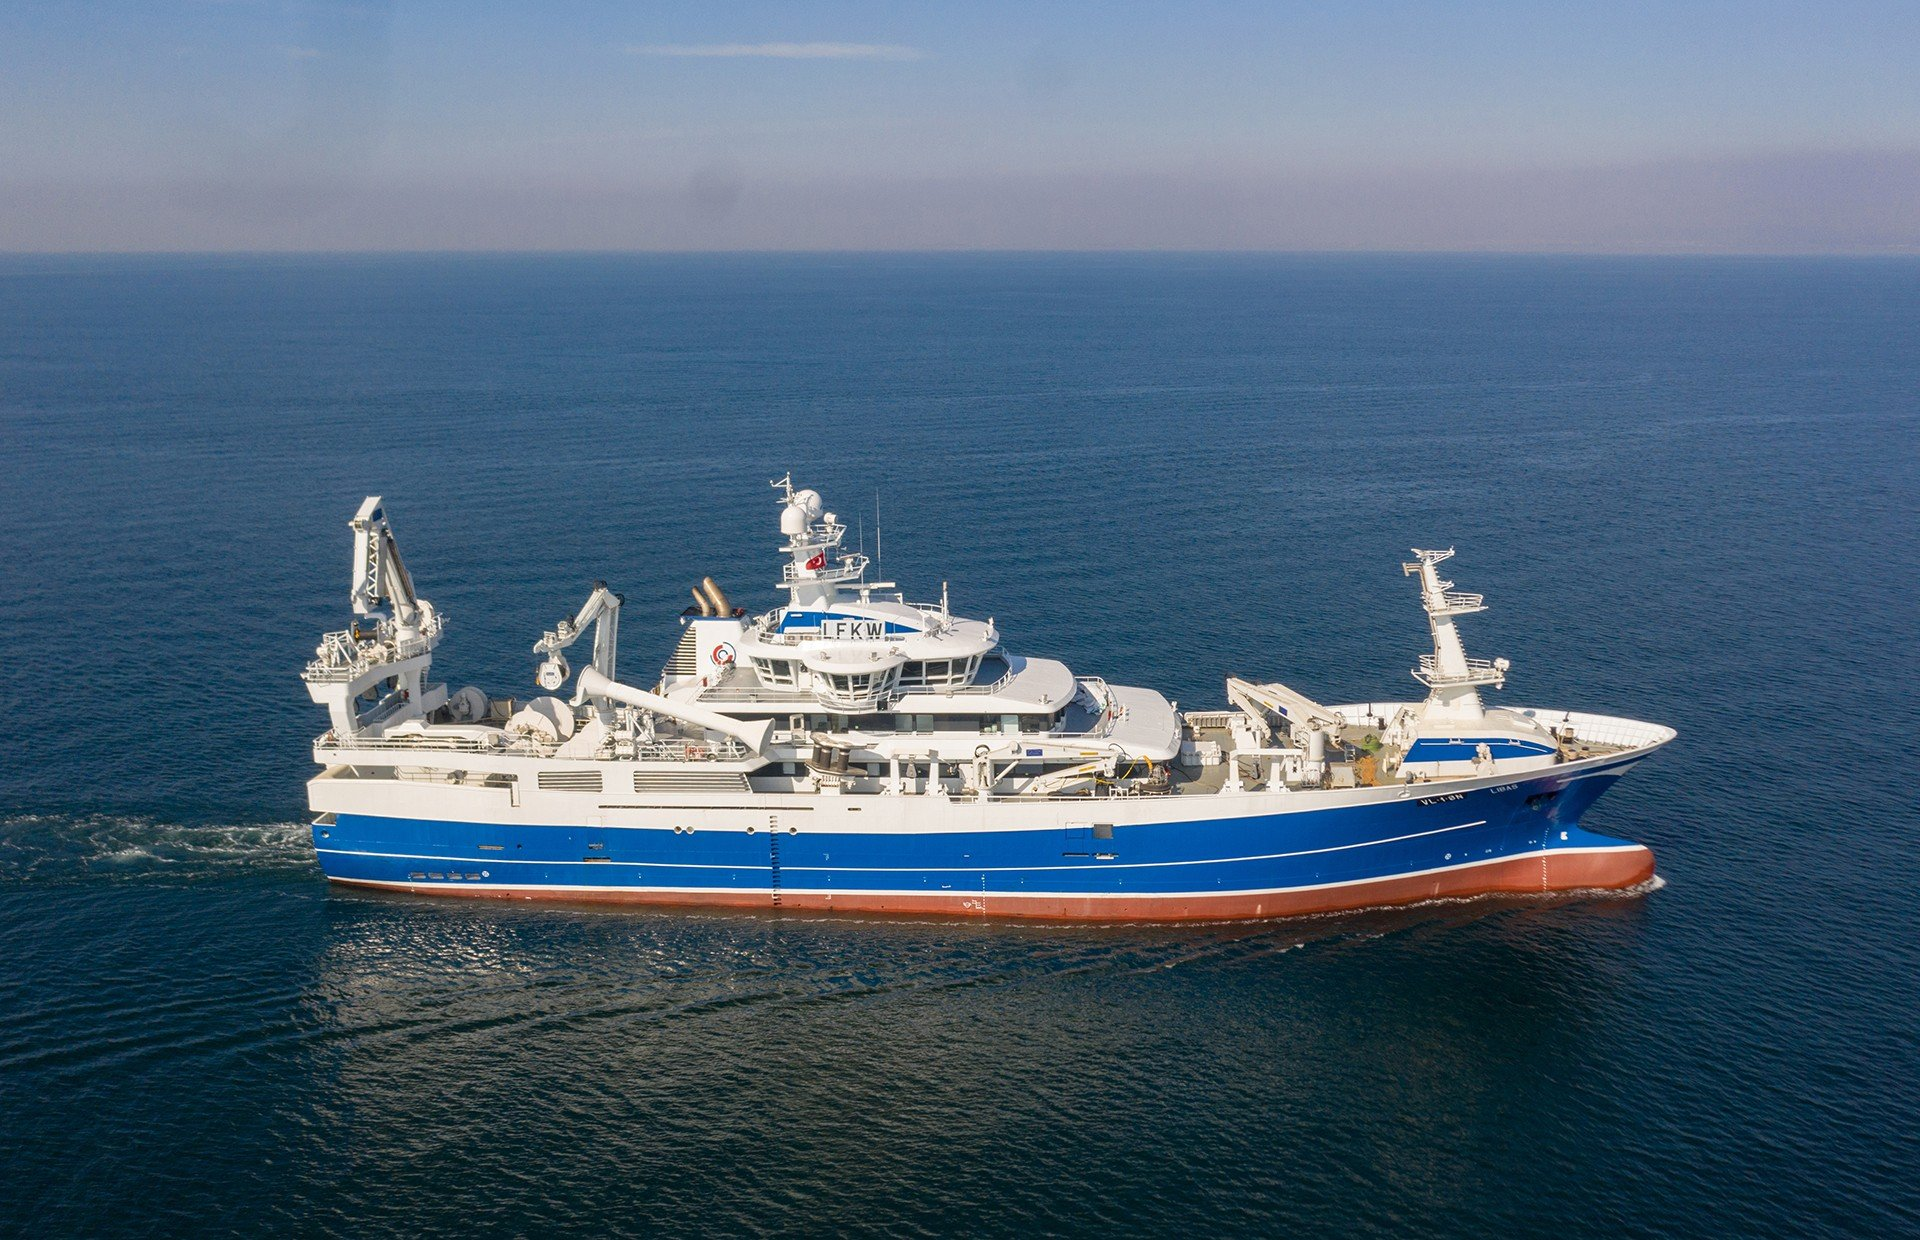 Purse Seiner Trawler NB64 Libas is Delivered.